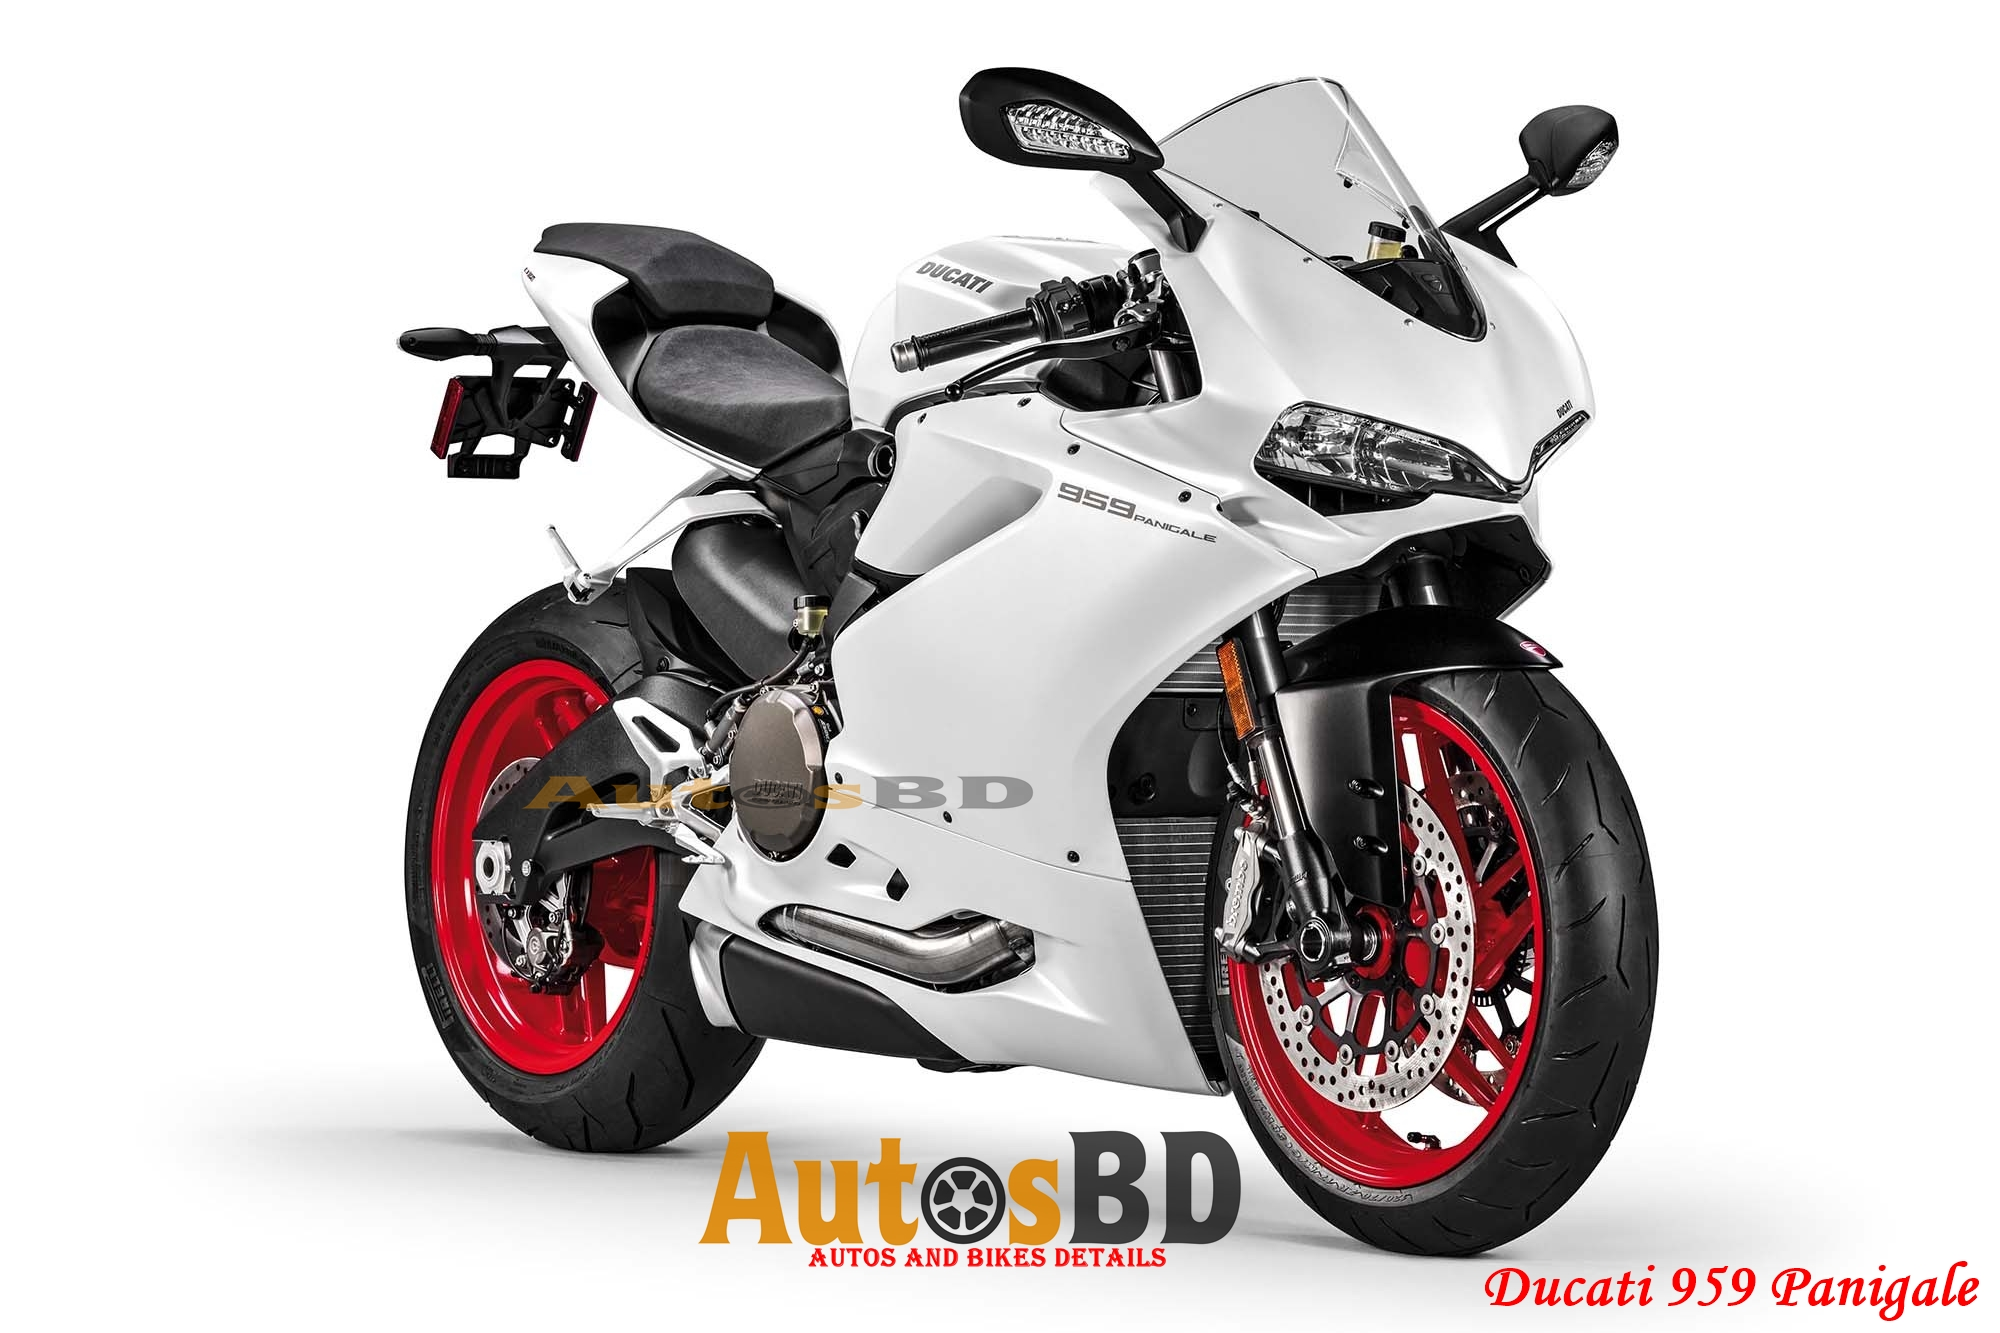 Ducati 959 Panigale Motorcycle Price in India